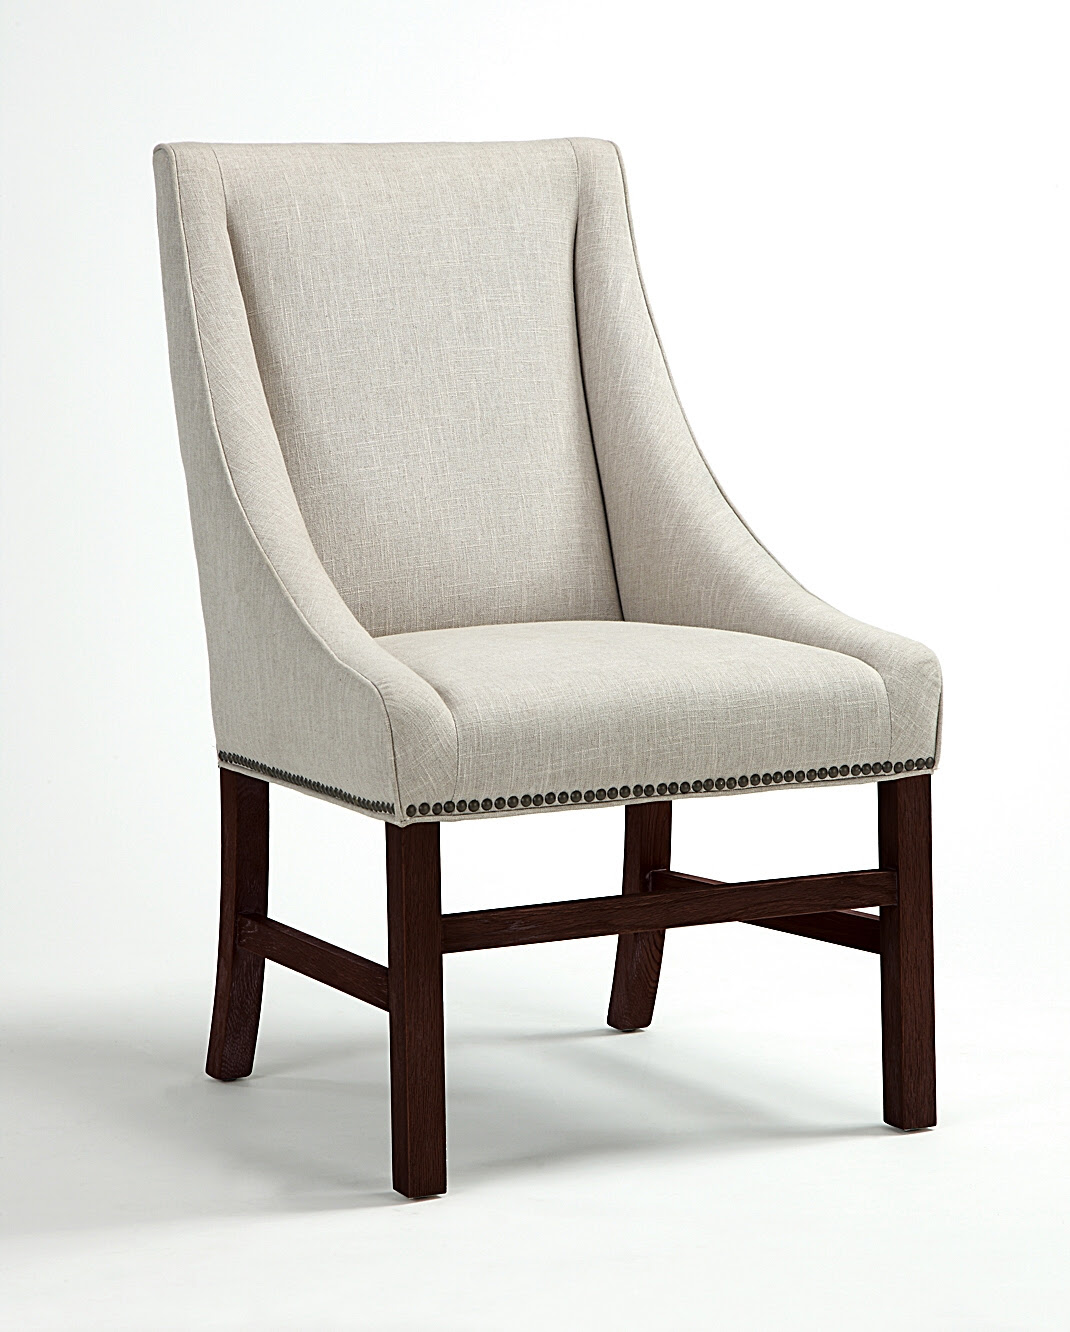 White Upholstered Dining Chair Displaying Infinite ...